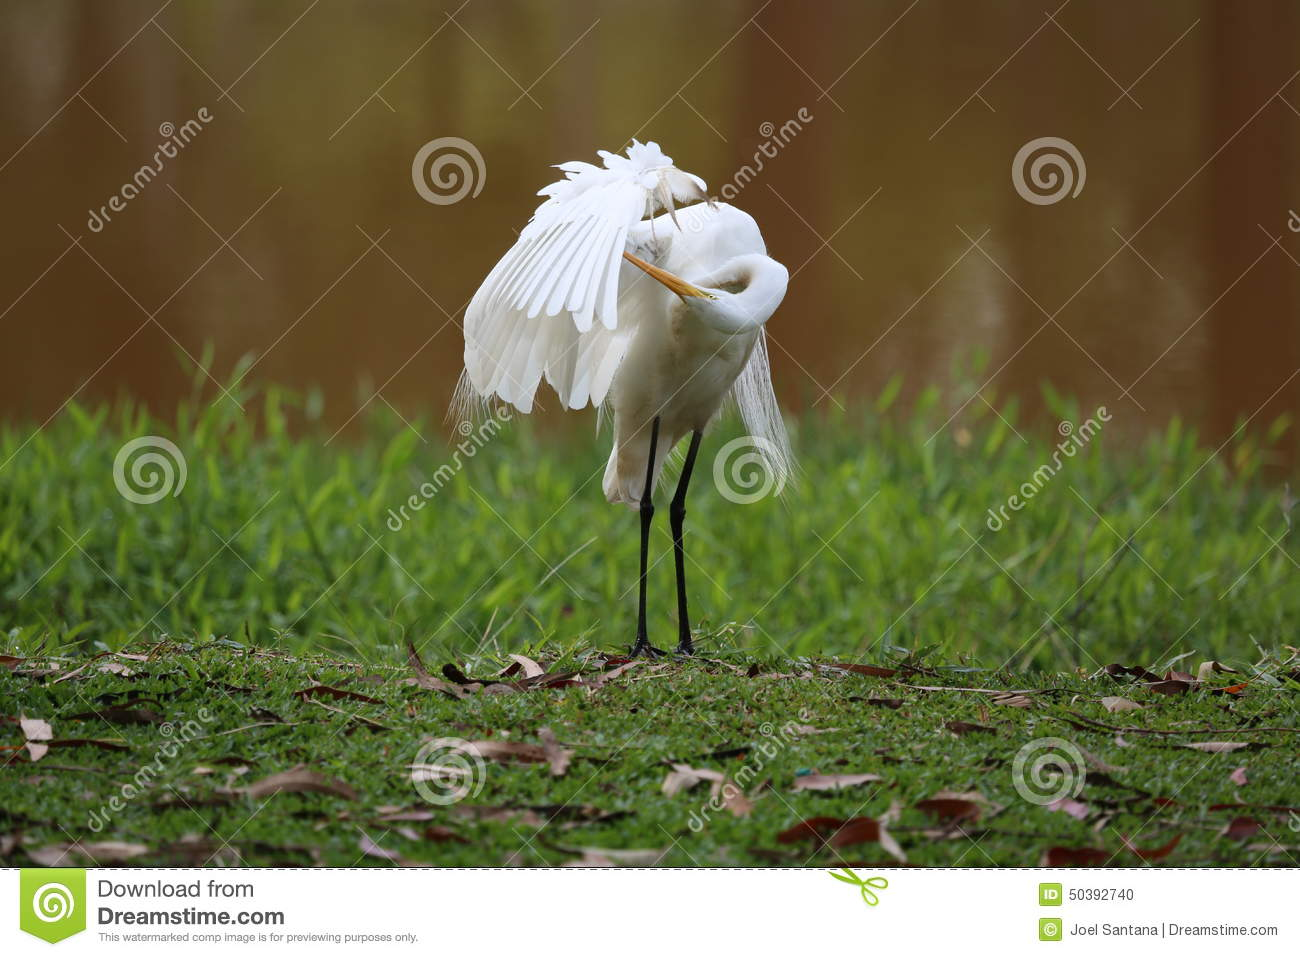 Egret Cartoons: Baby Great White Heron Royalty-Free Stock Photo